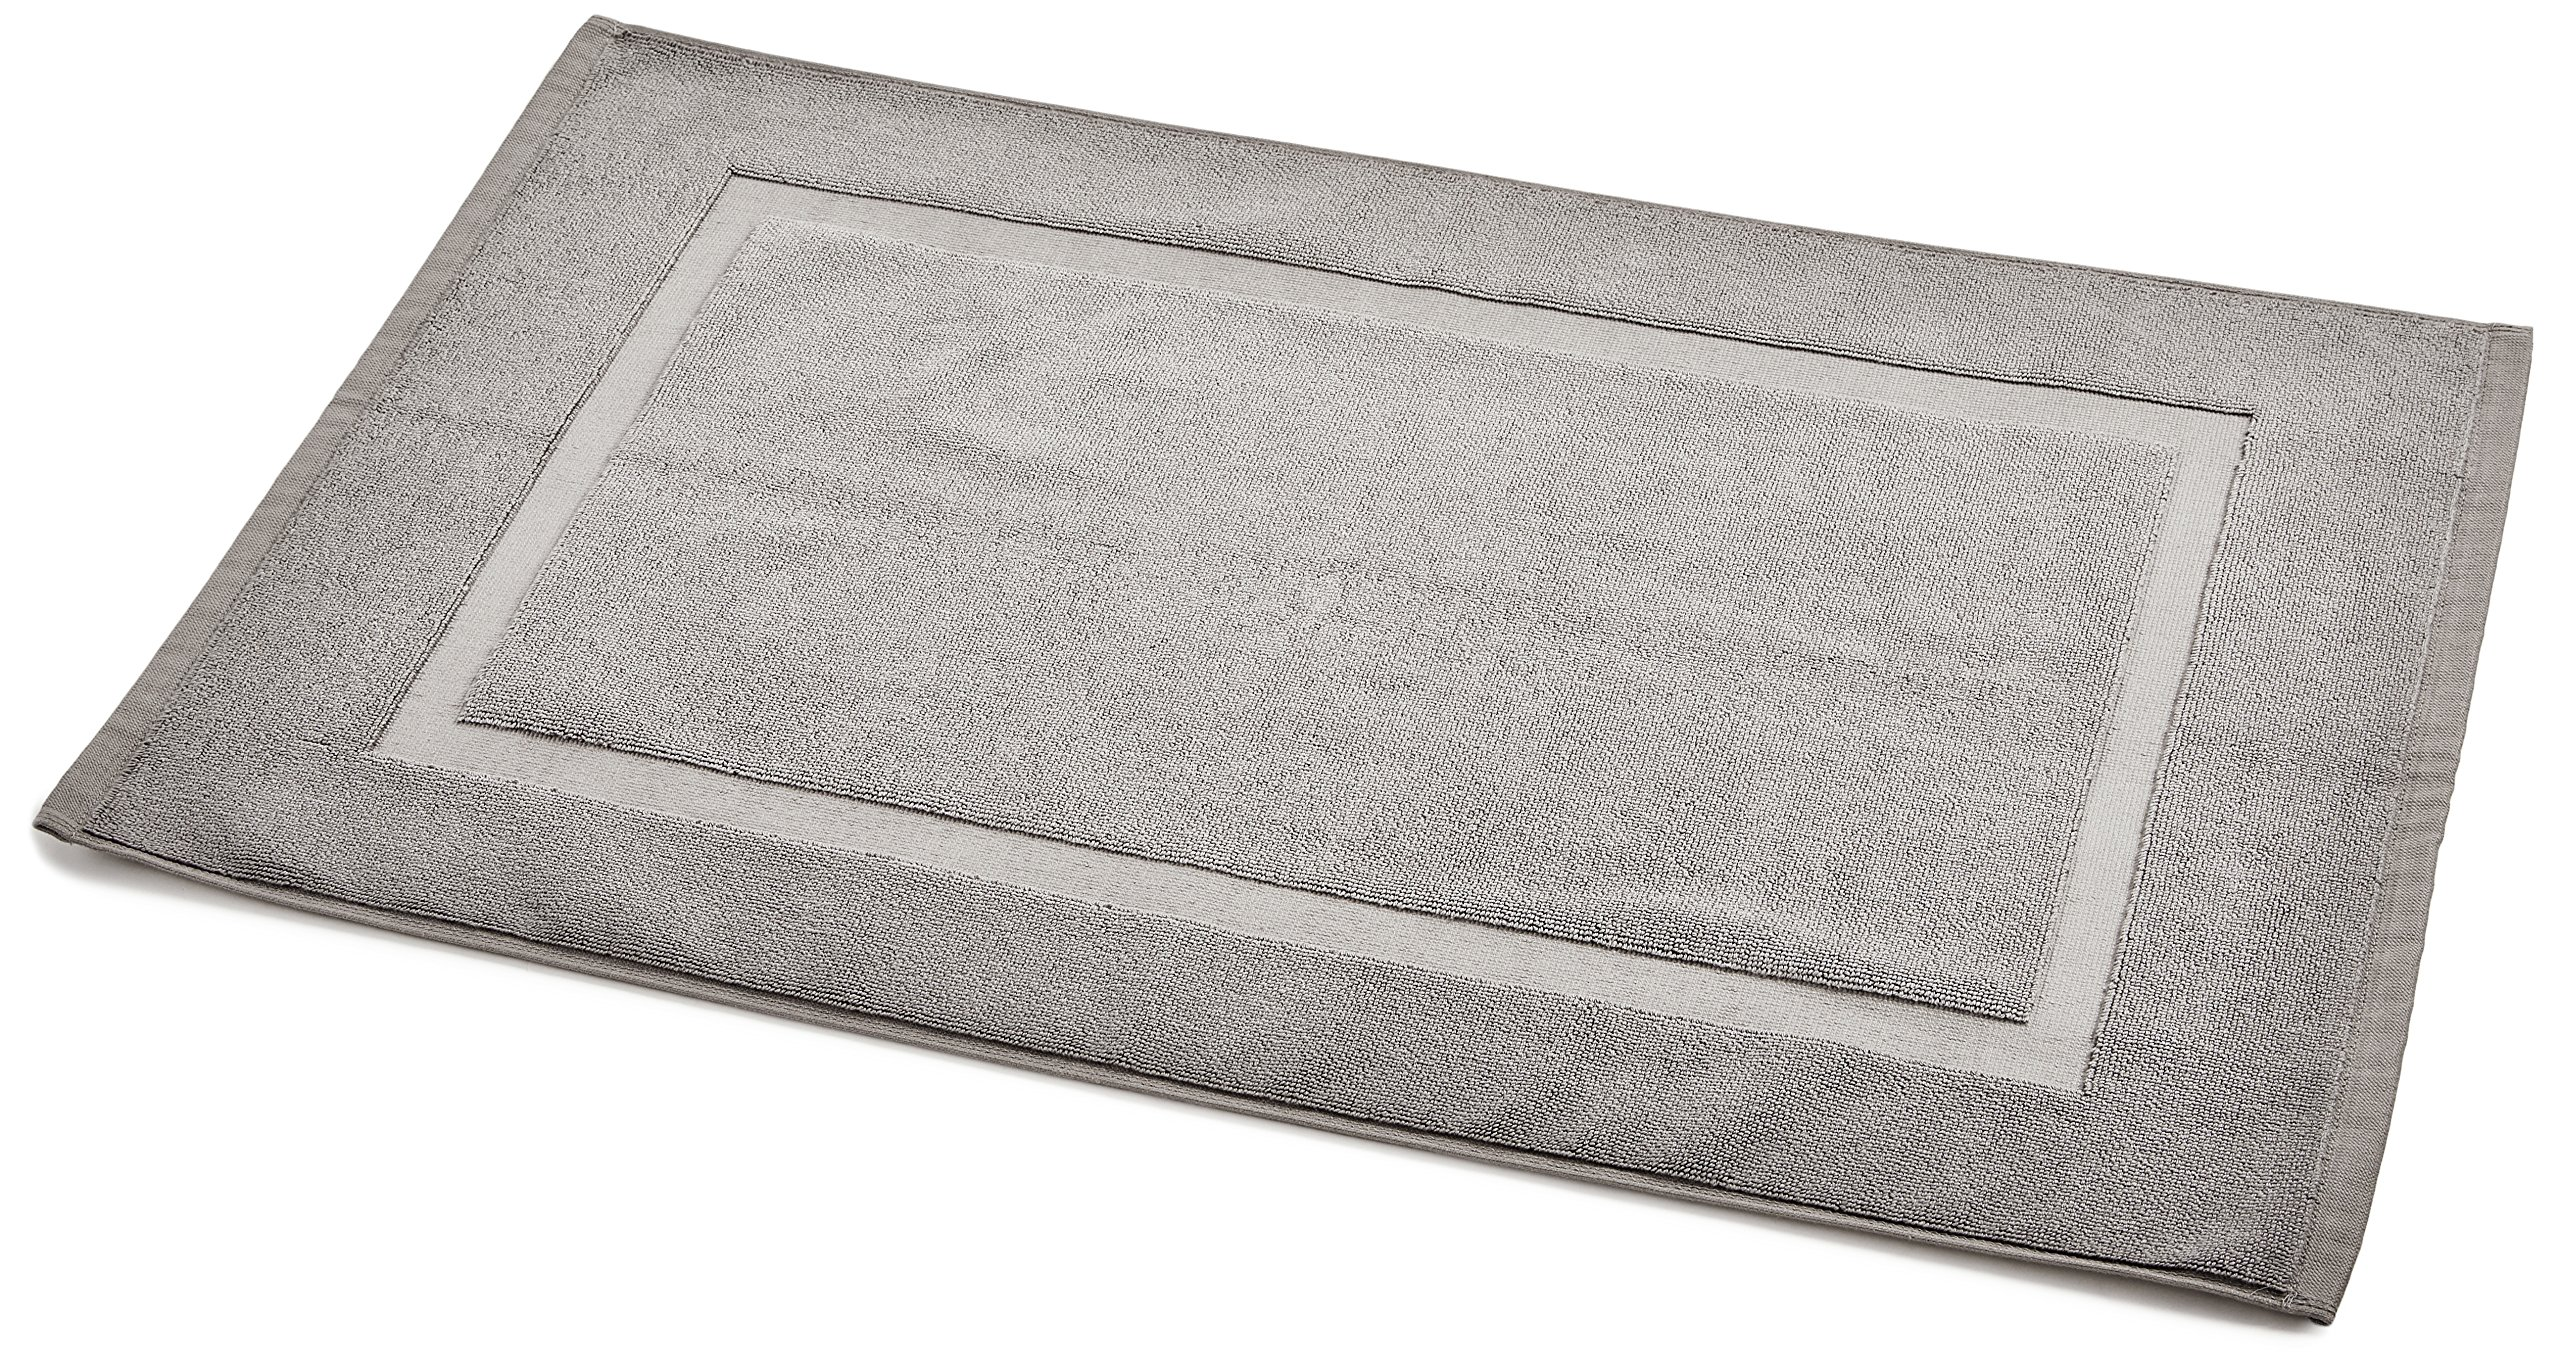 AmazonBasics Banded Bath Mat, Grey by AmazonBasics